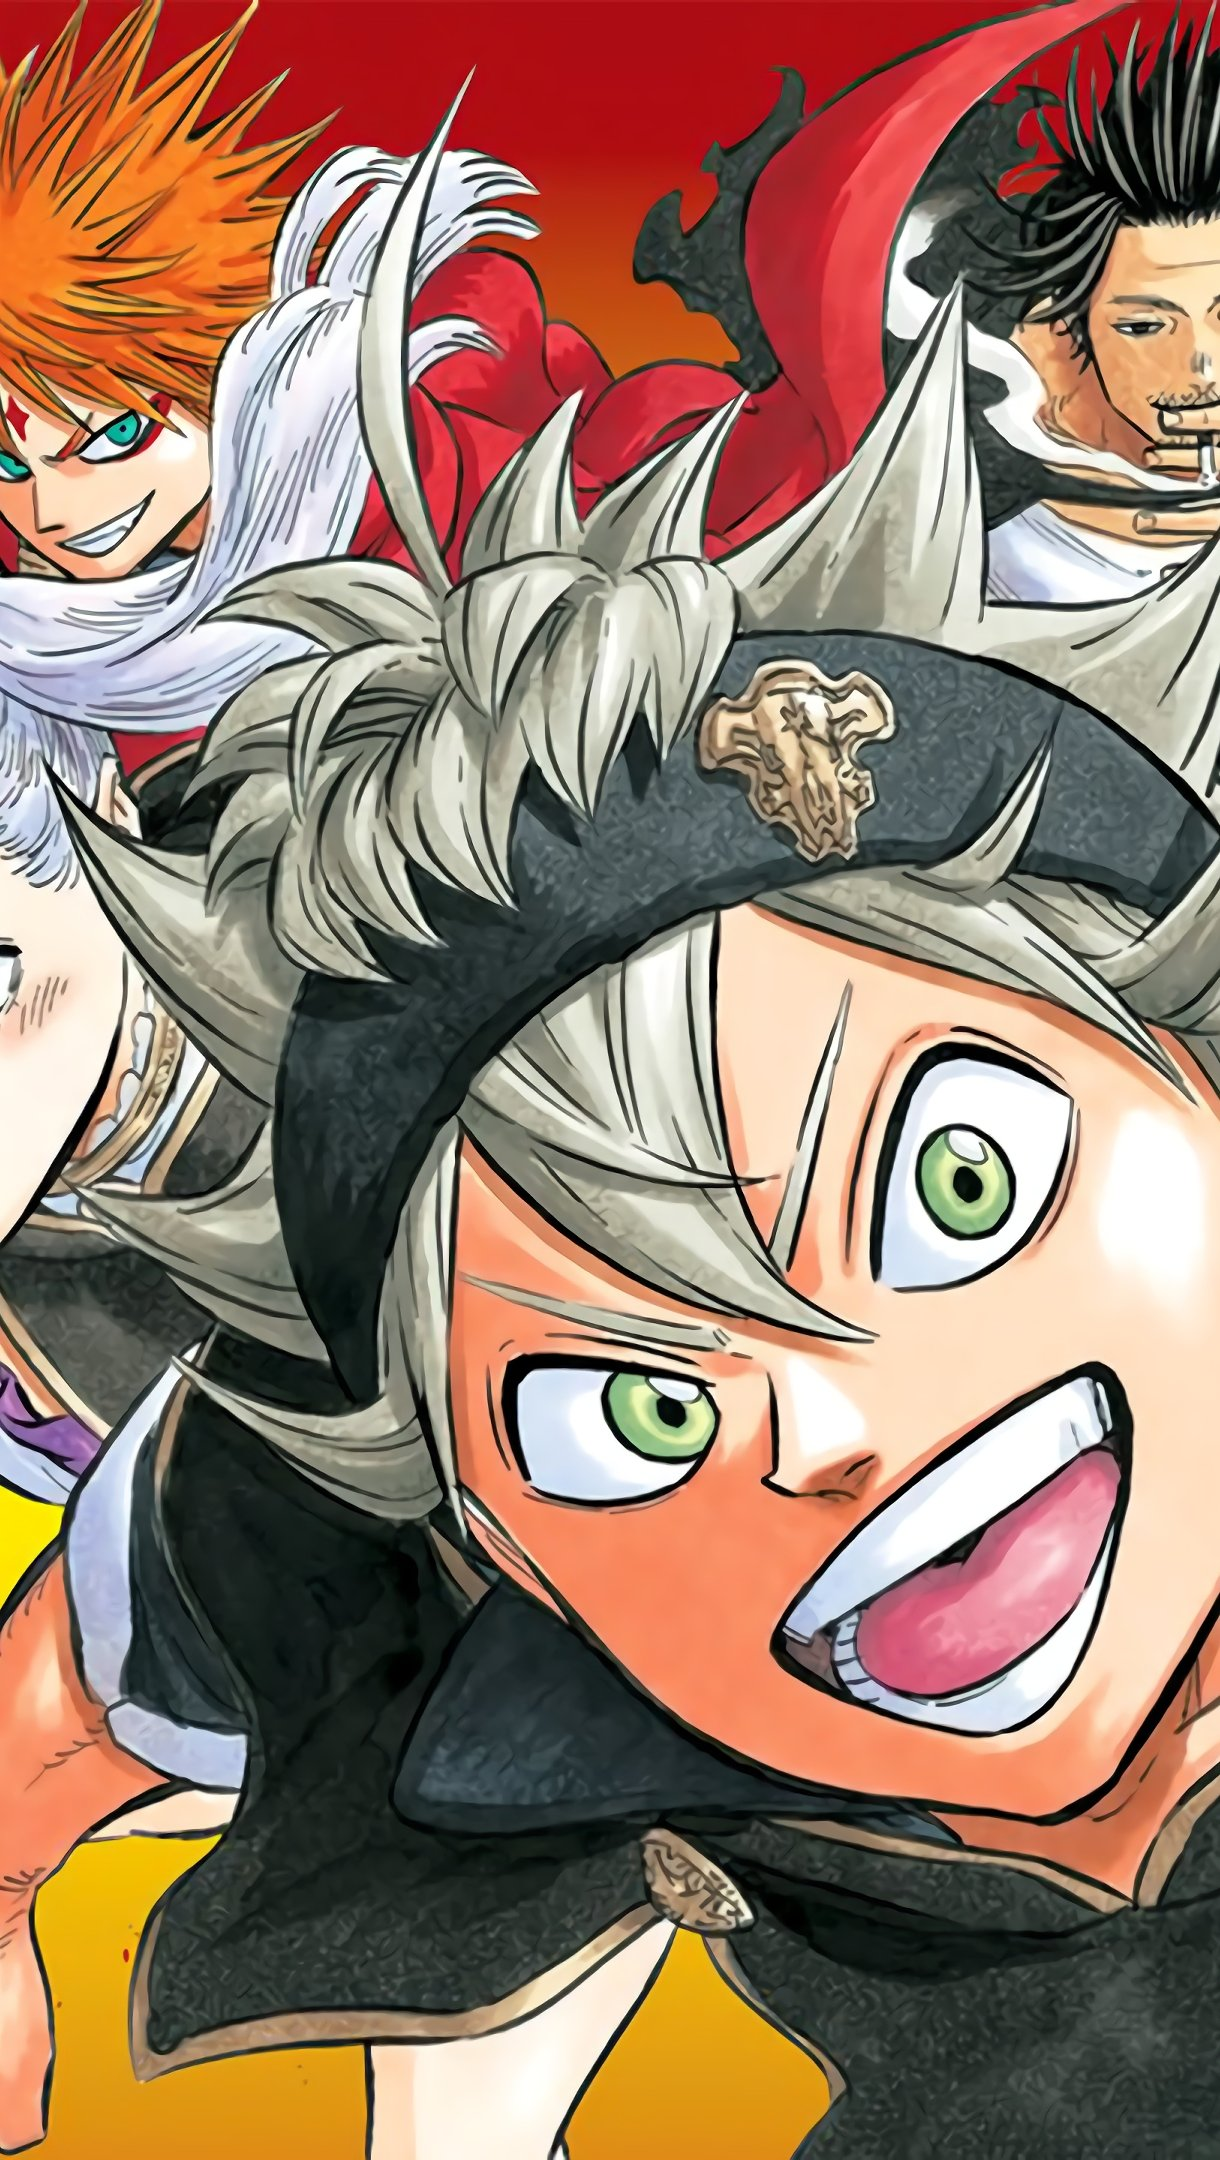 Anime Wallpaper Characters from Black Clover Vertical